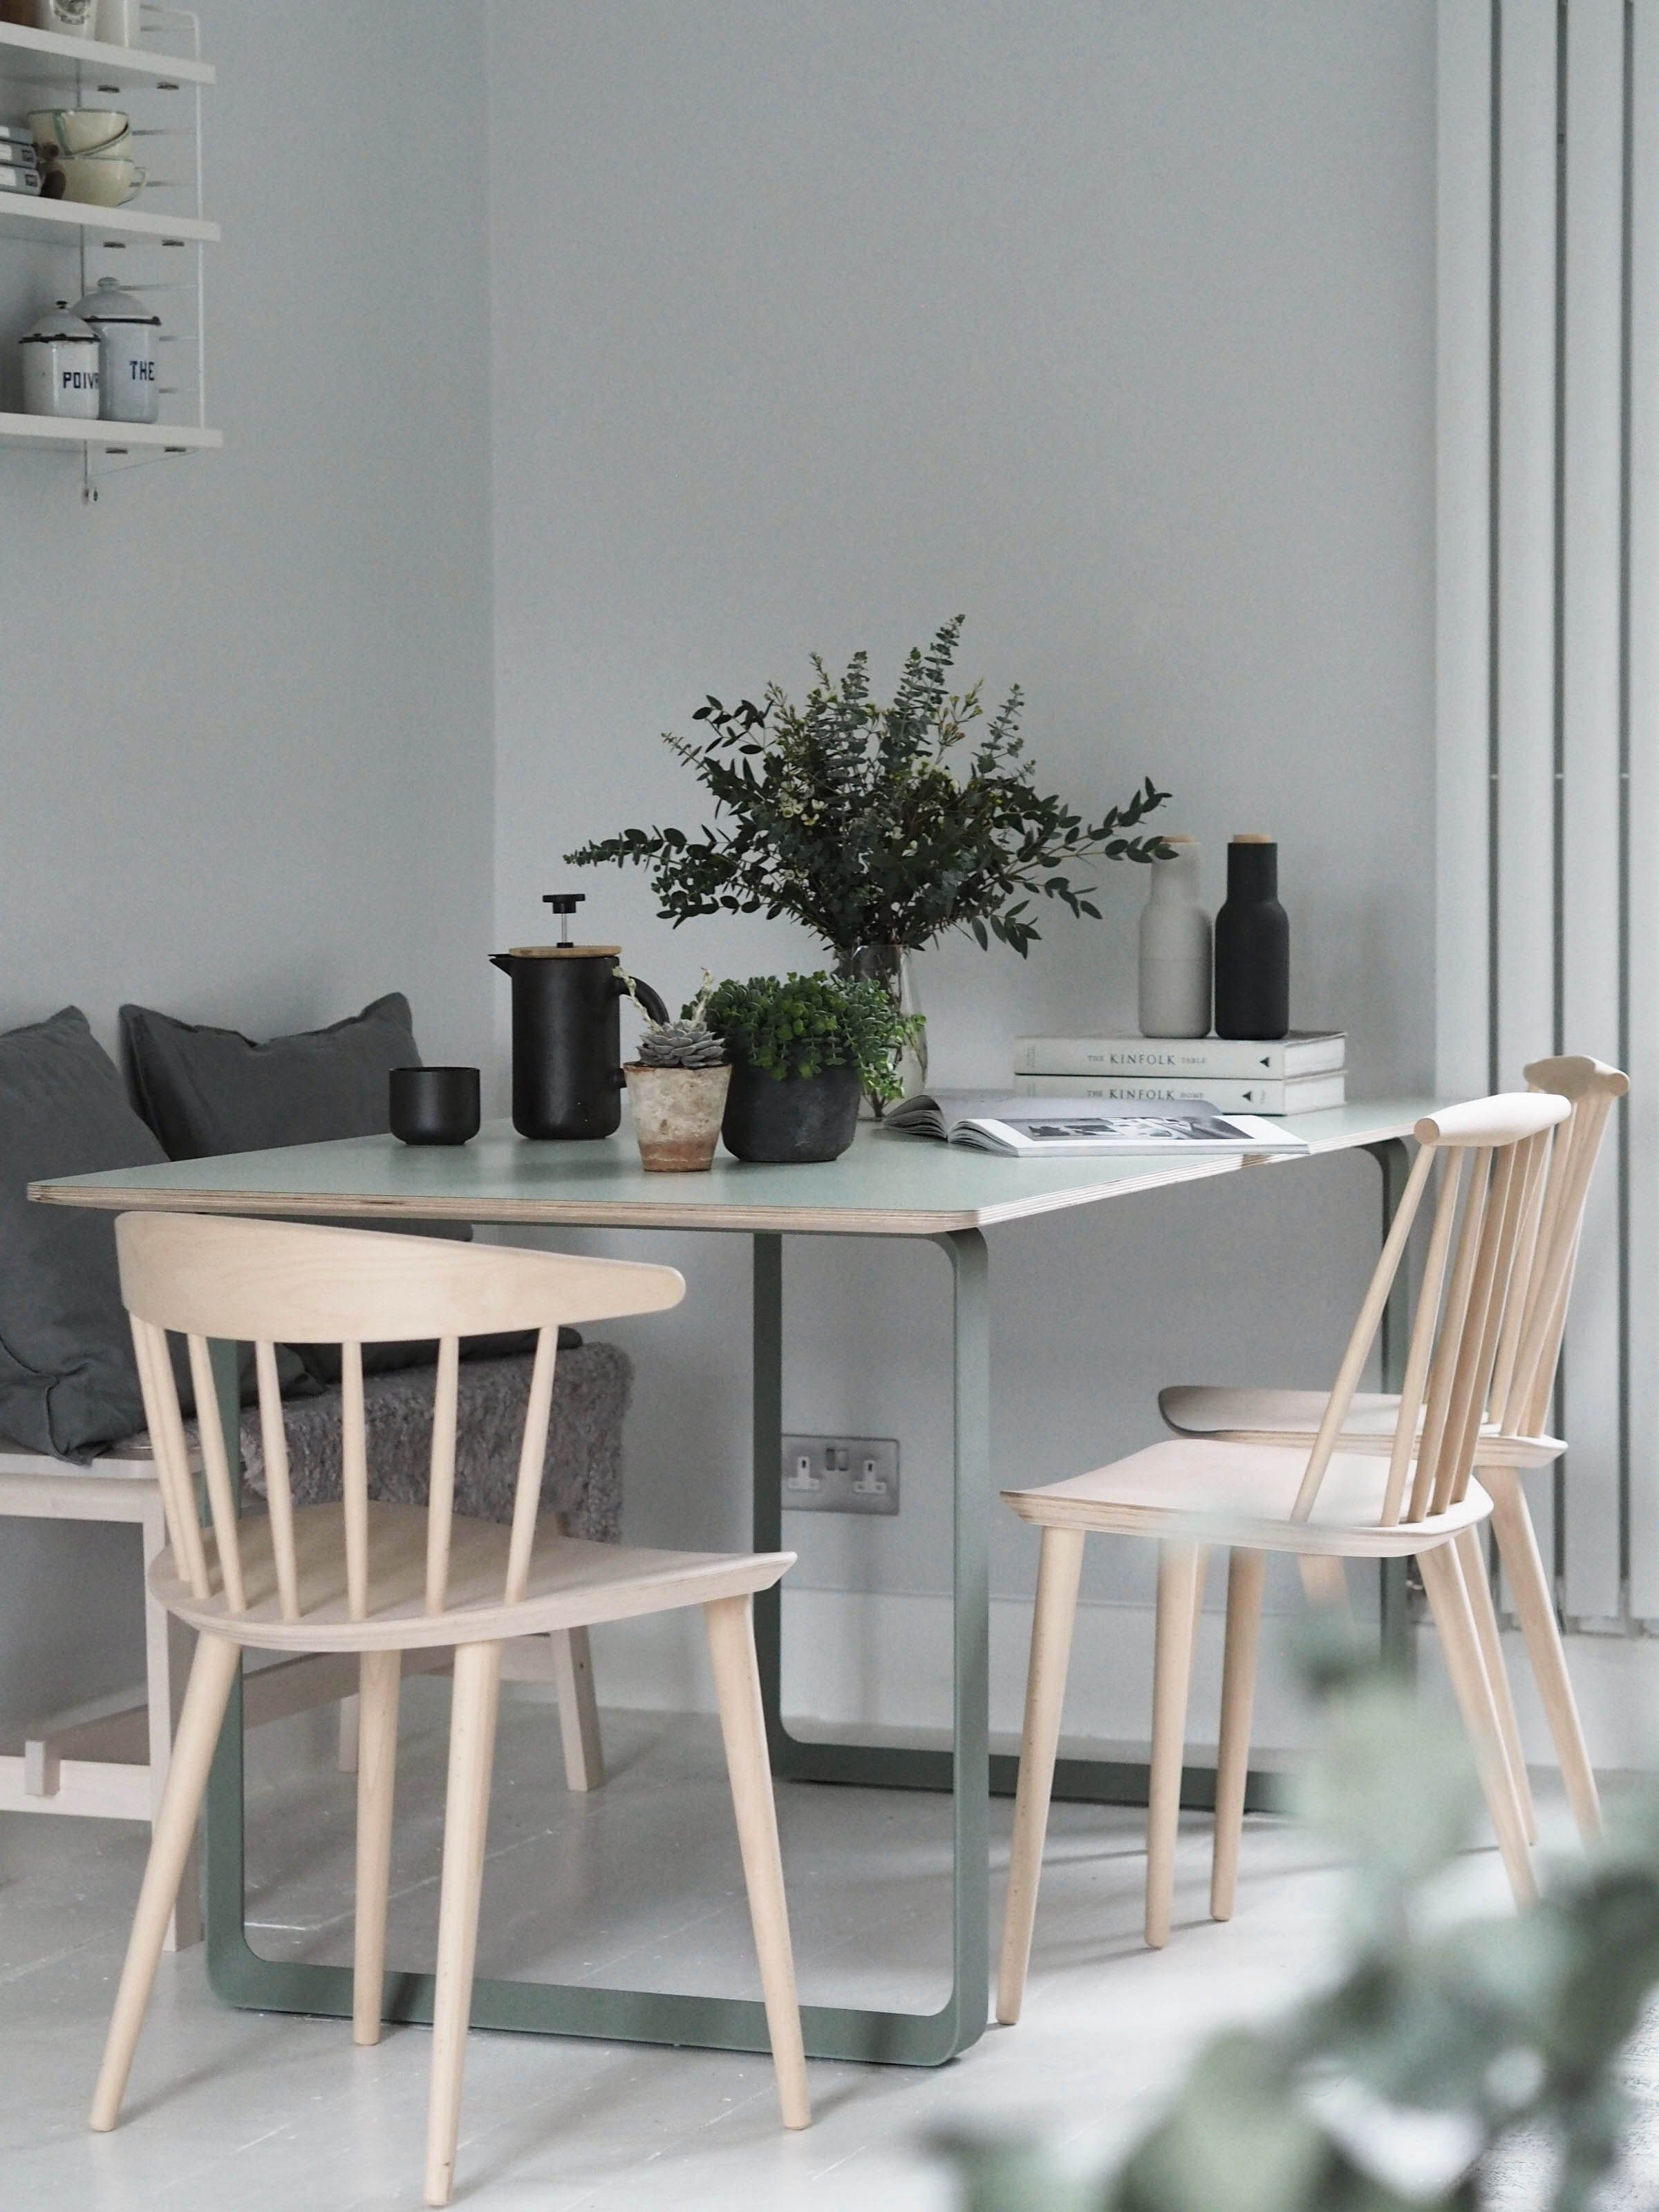 My muuto 70 70 table modern scandinavian design dining for Scandinavian style wohnen